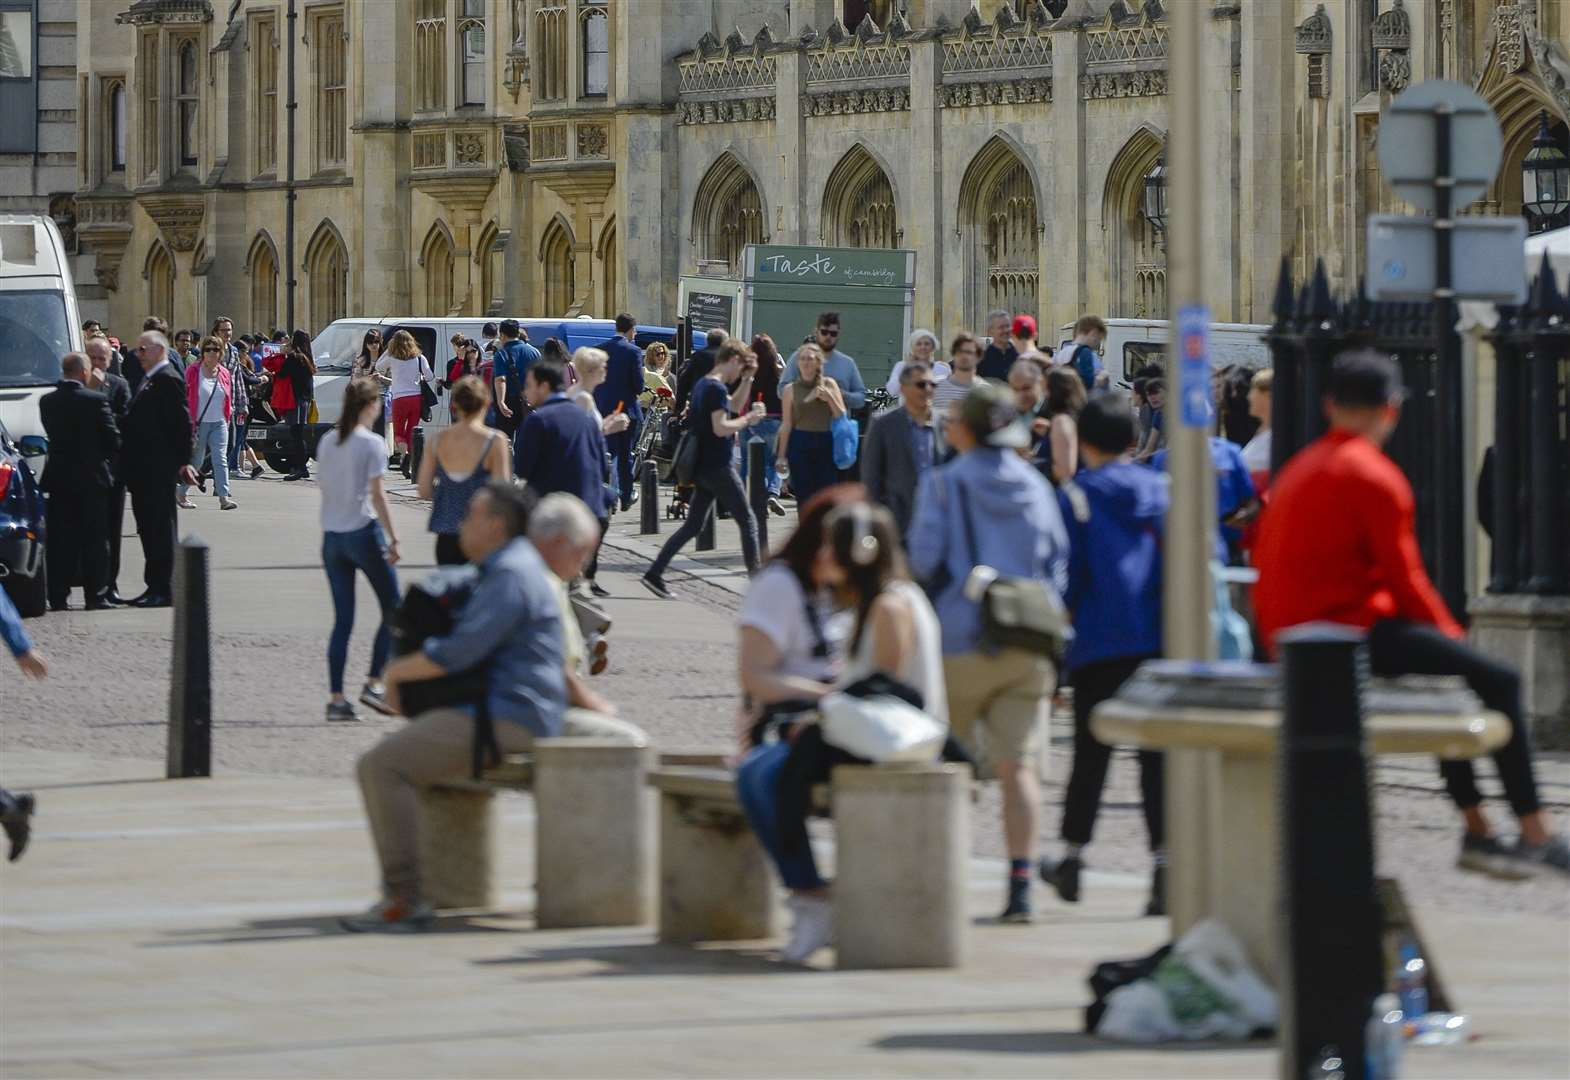 Famous Cambridge street section to be closed for trial period to counter terror threat